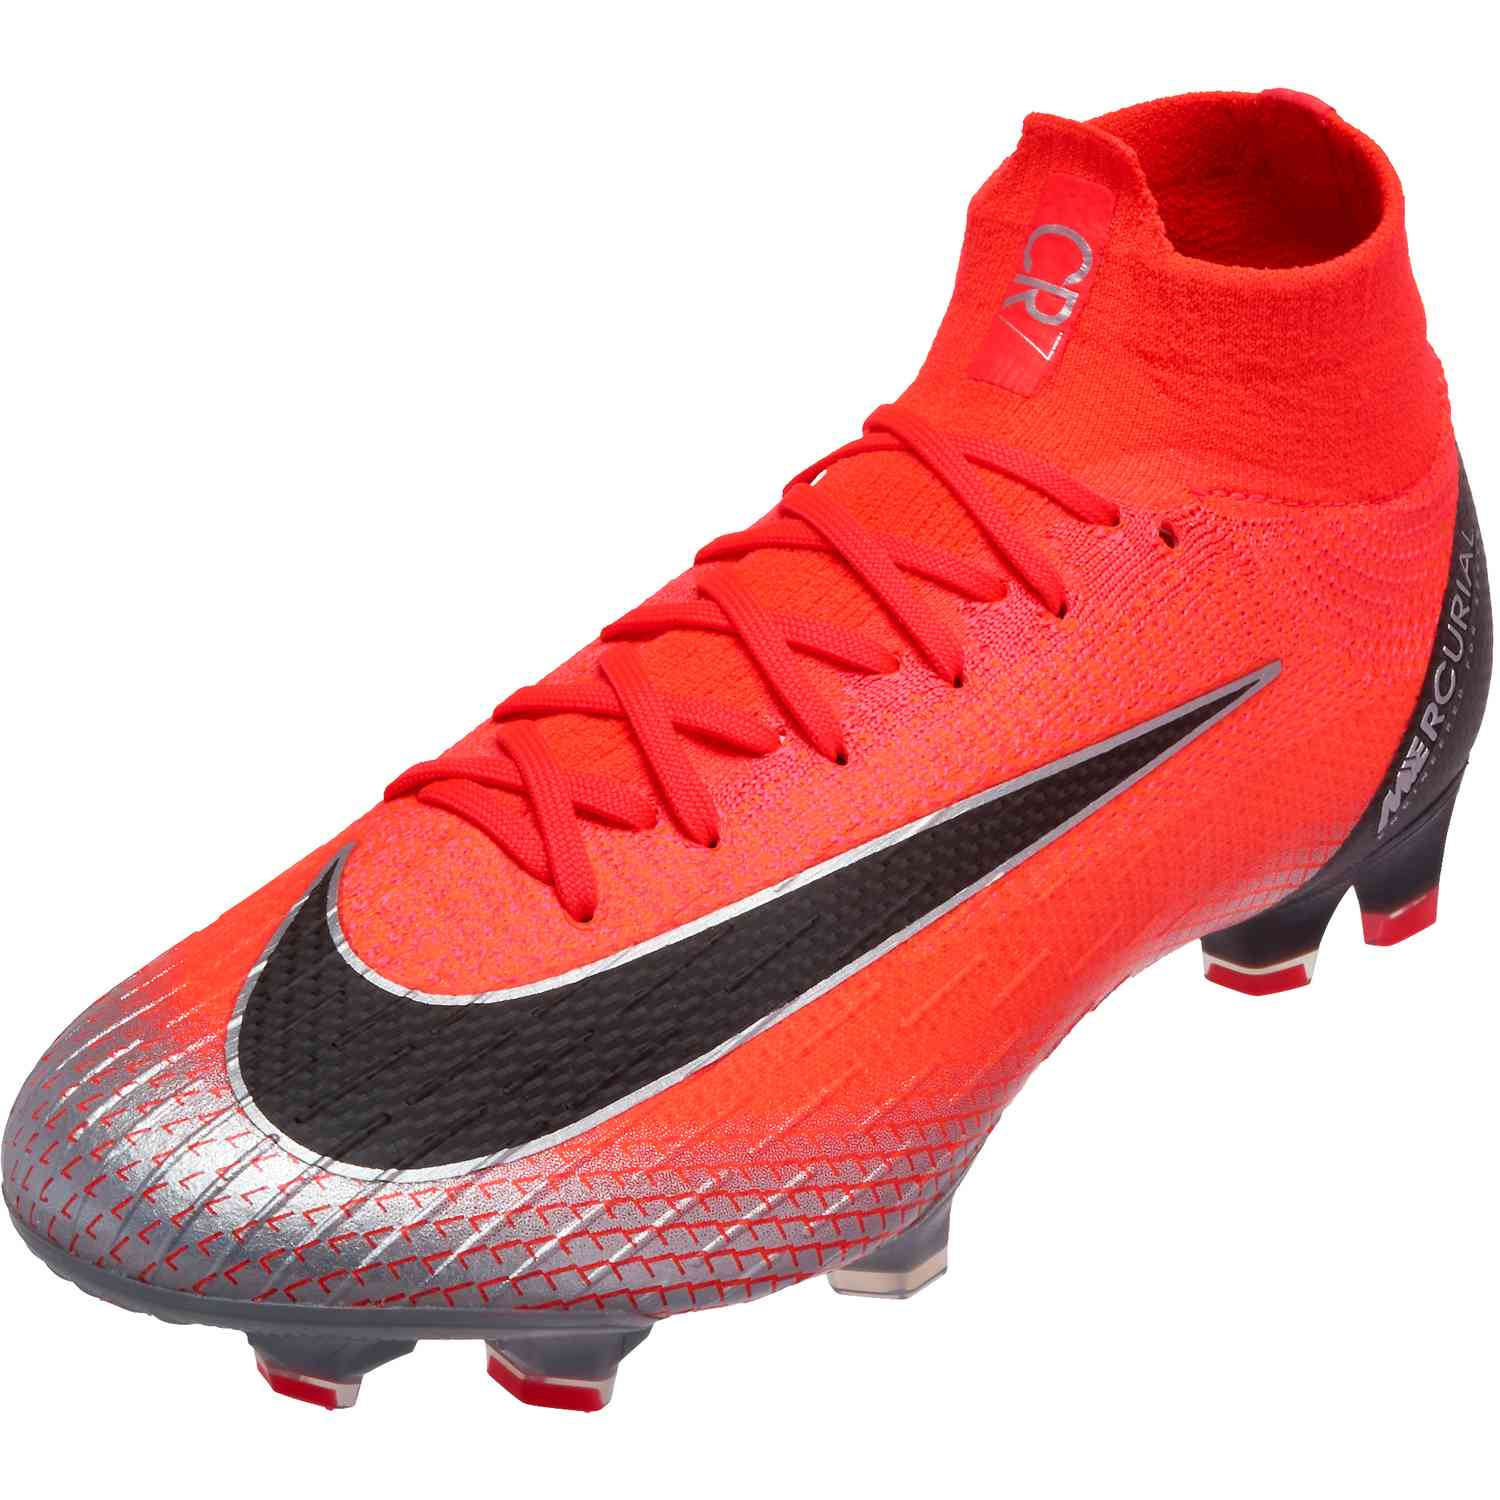 f247bd87e7b4 Nike CR7 Mercurial Superfly Elite - Chapter 7 - SoccerPro.com